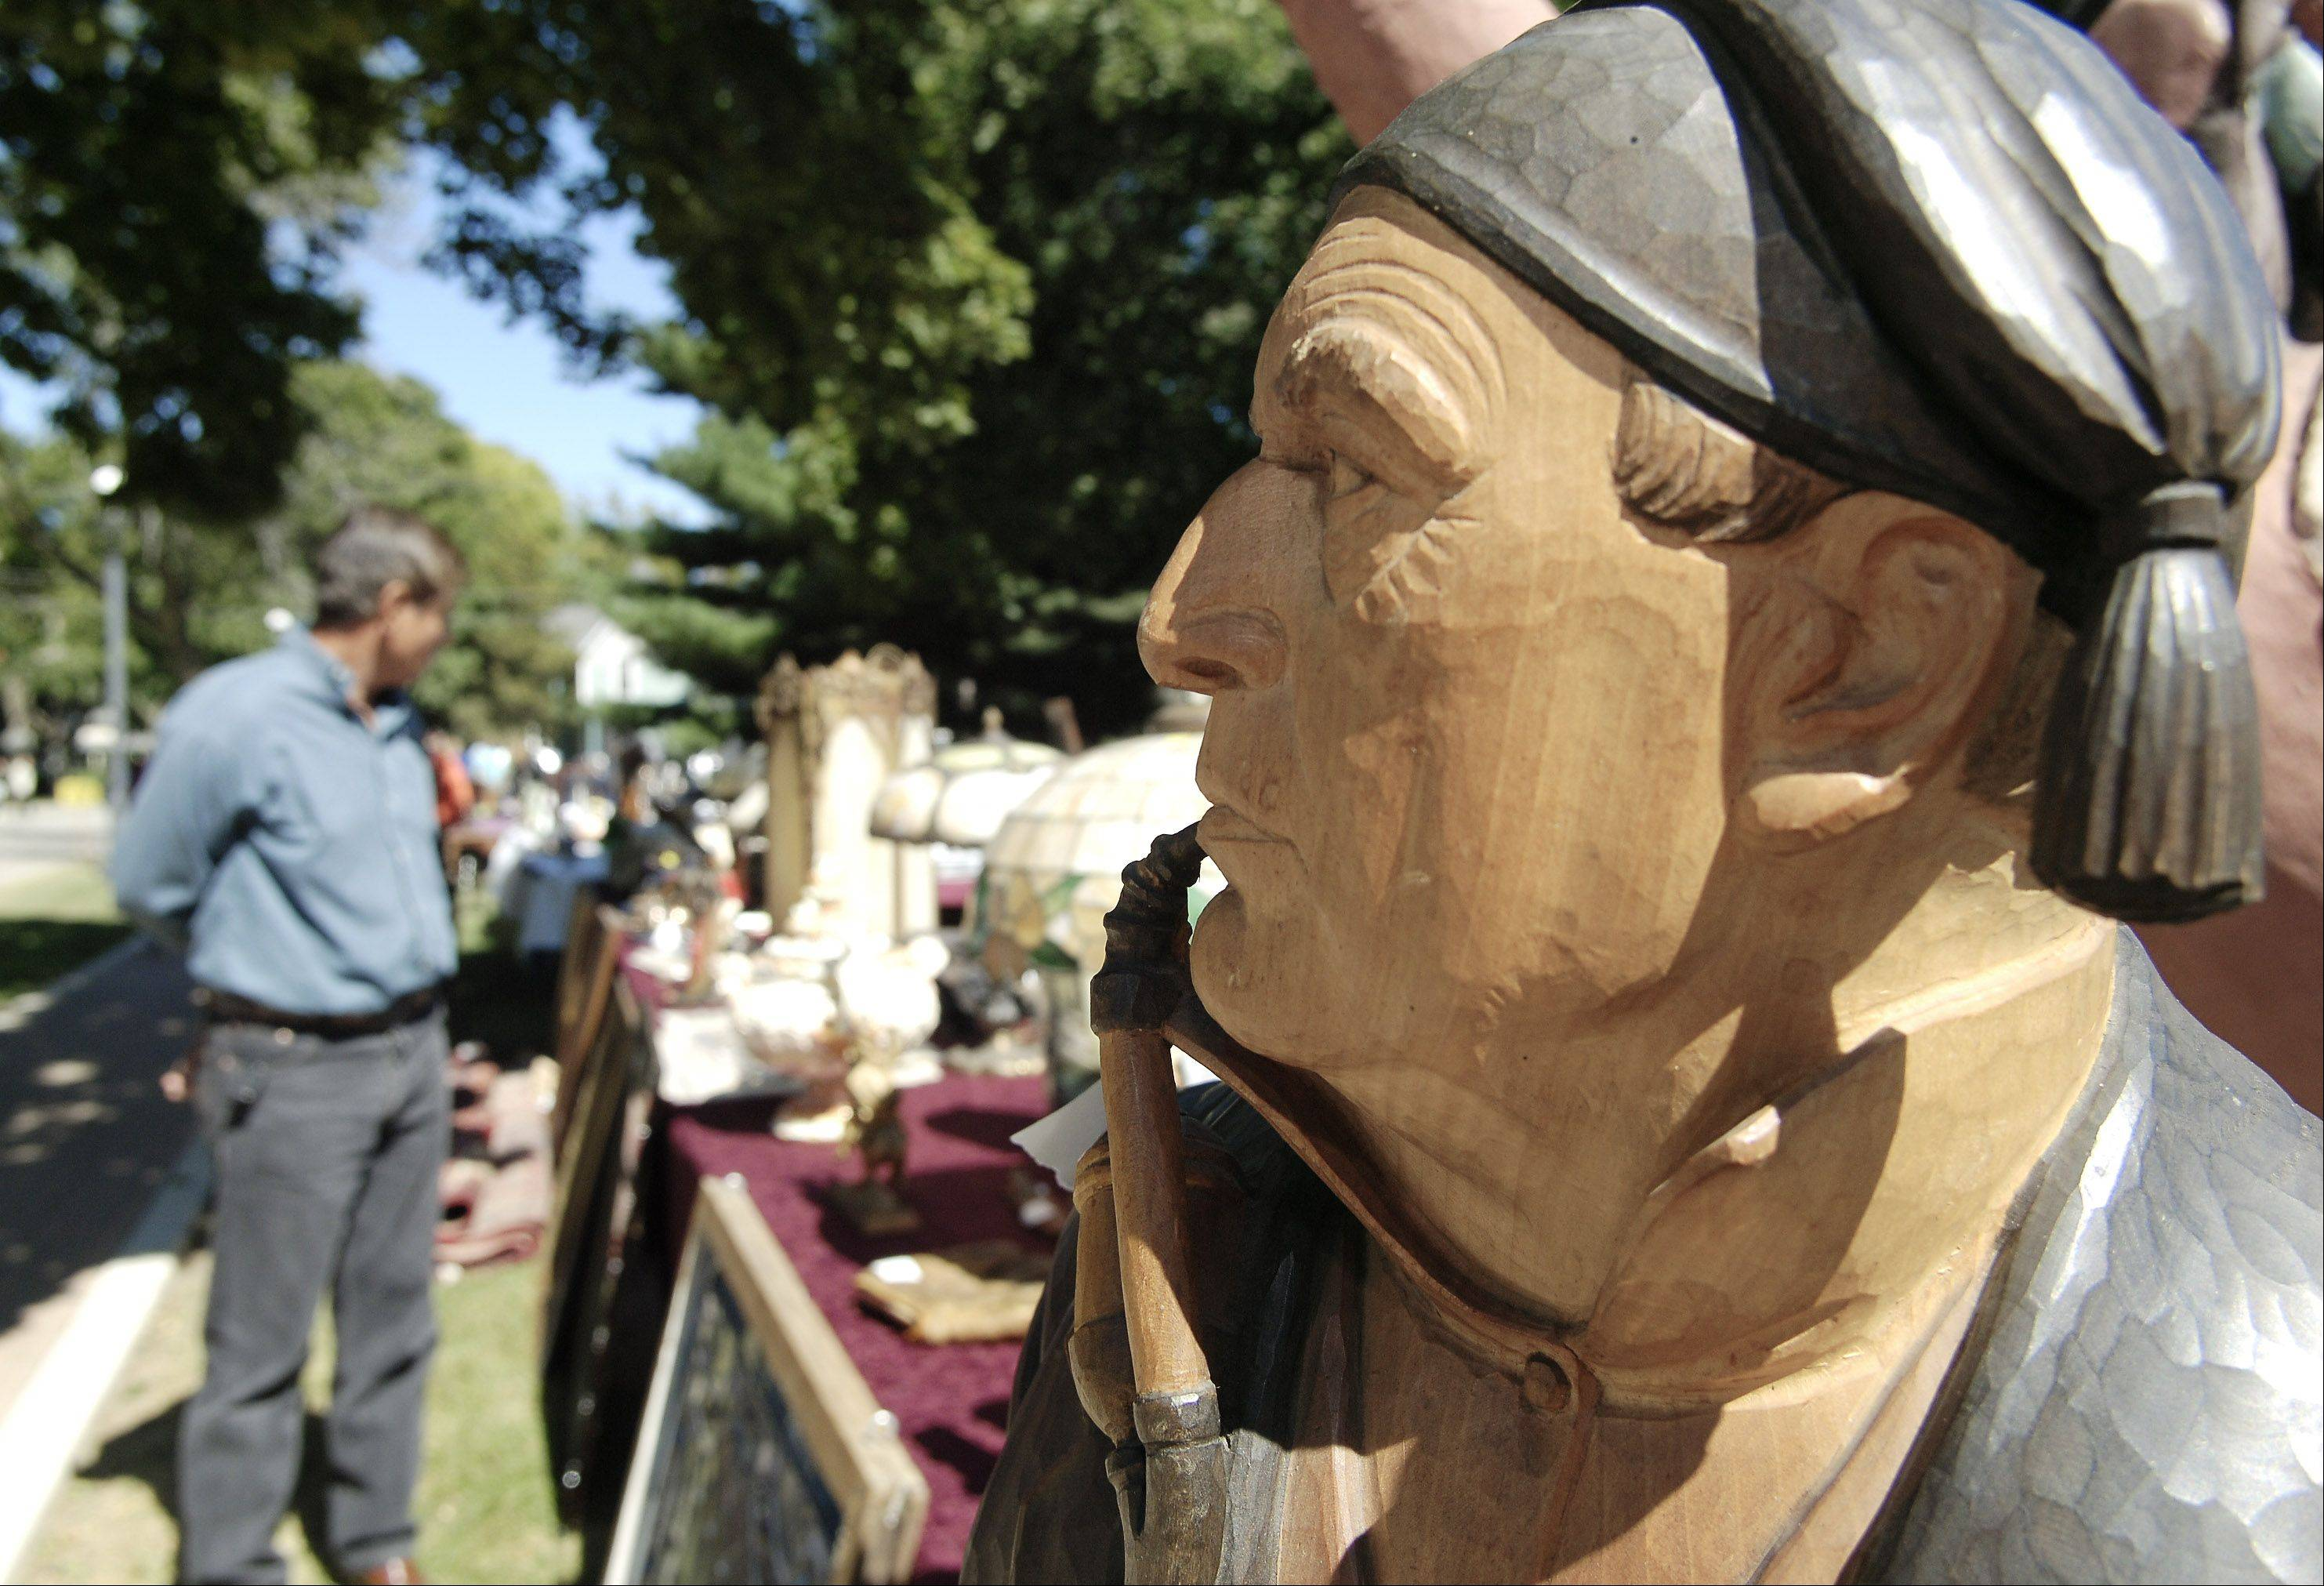 The organizers of West Dundee's Heritage Fest are looking for antique collectors and dealers to display their wares Sept. 15-16 in Grafelman Park.